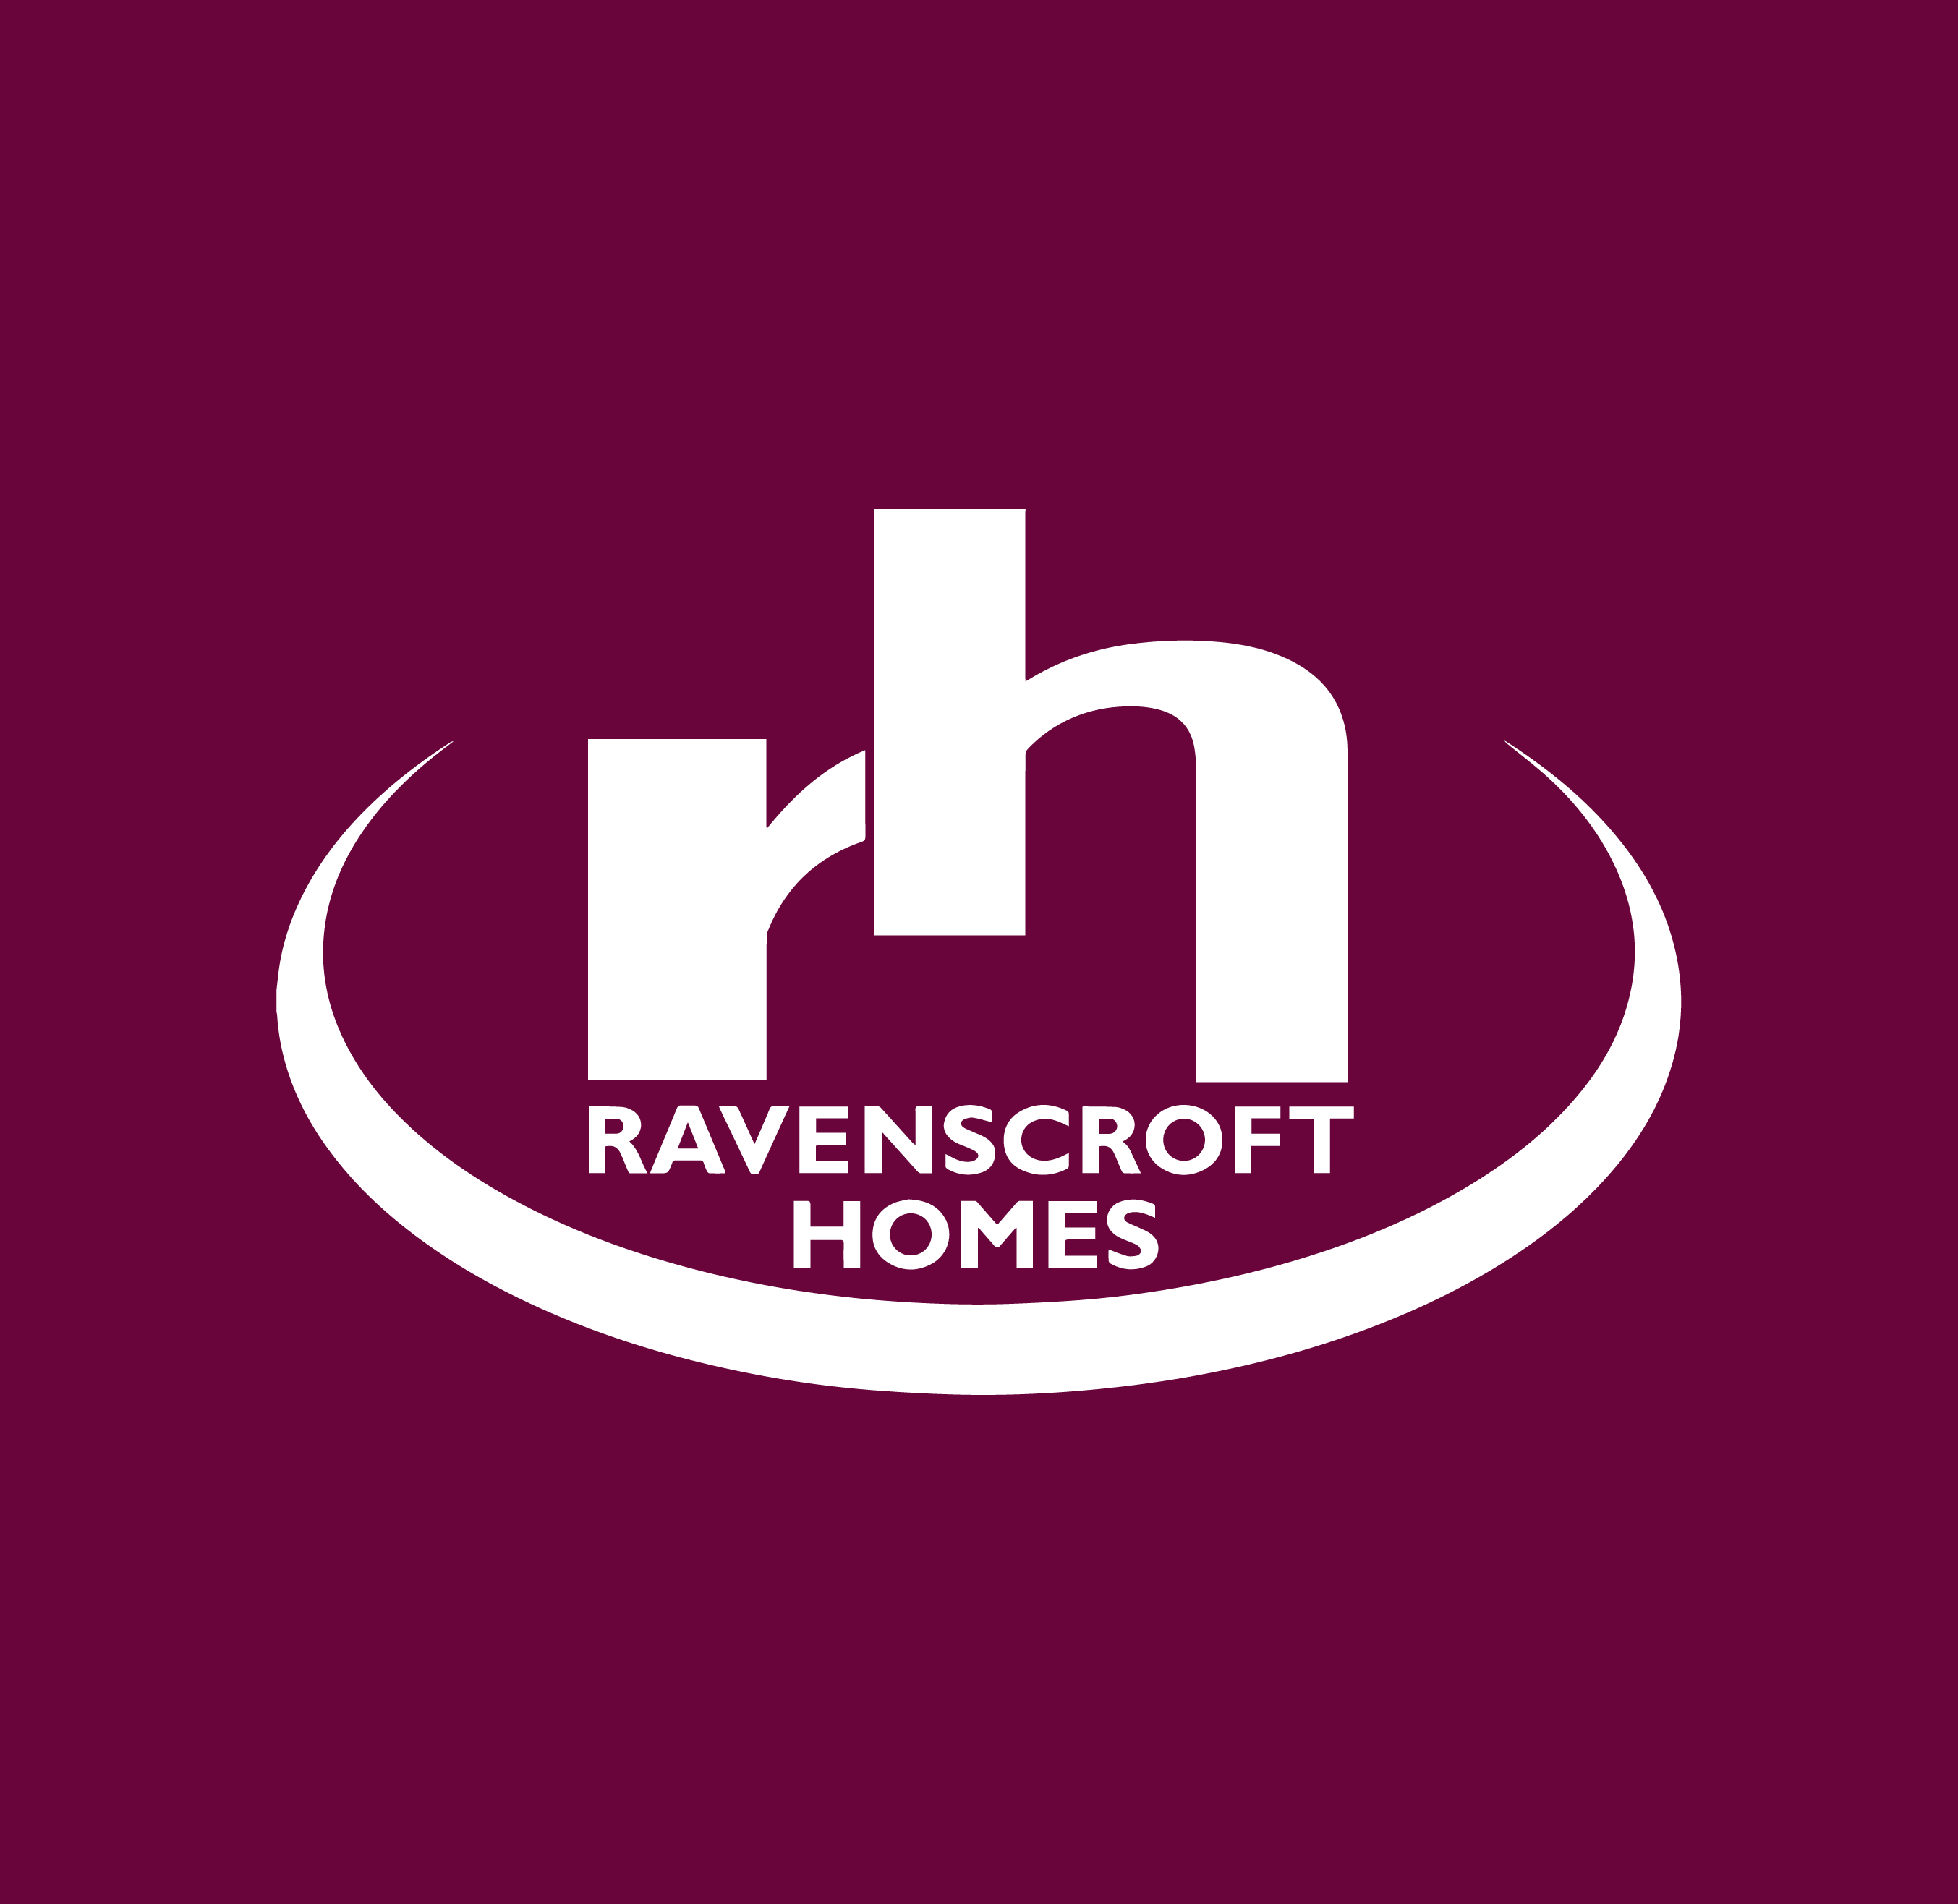 Ravenscroft Homes